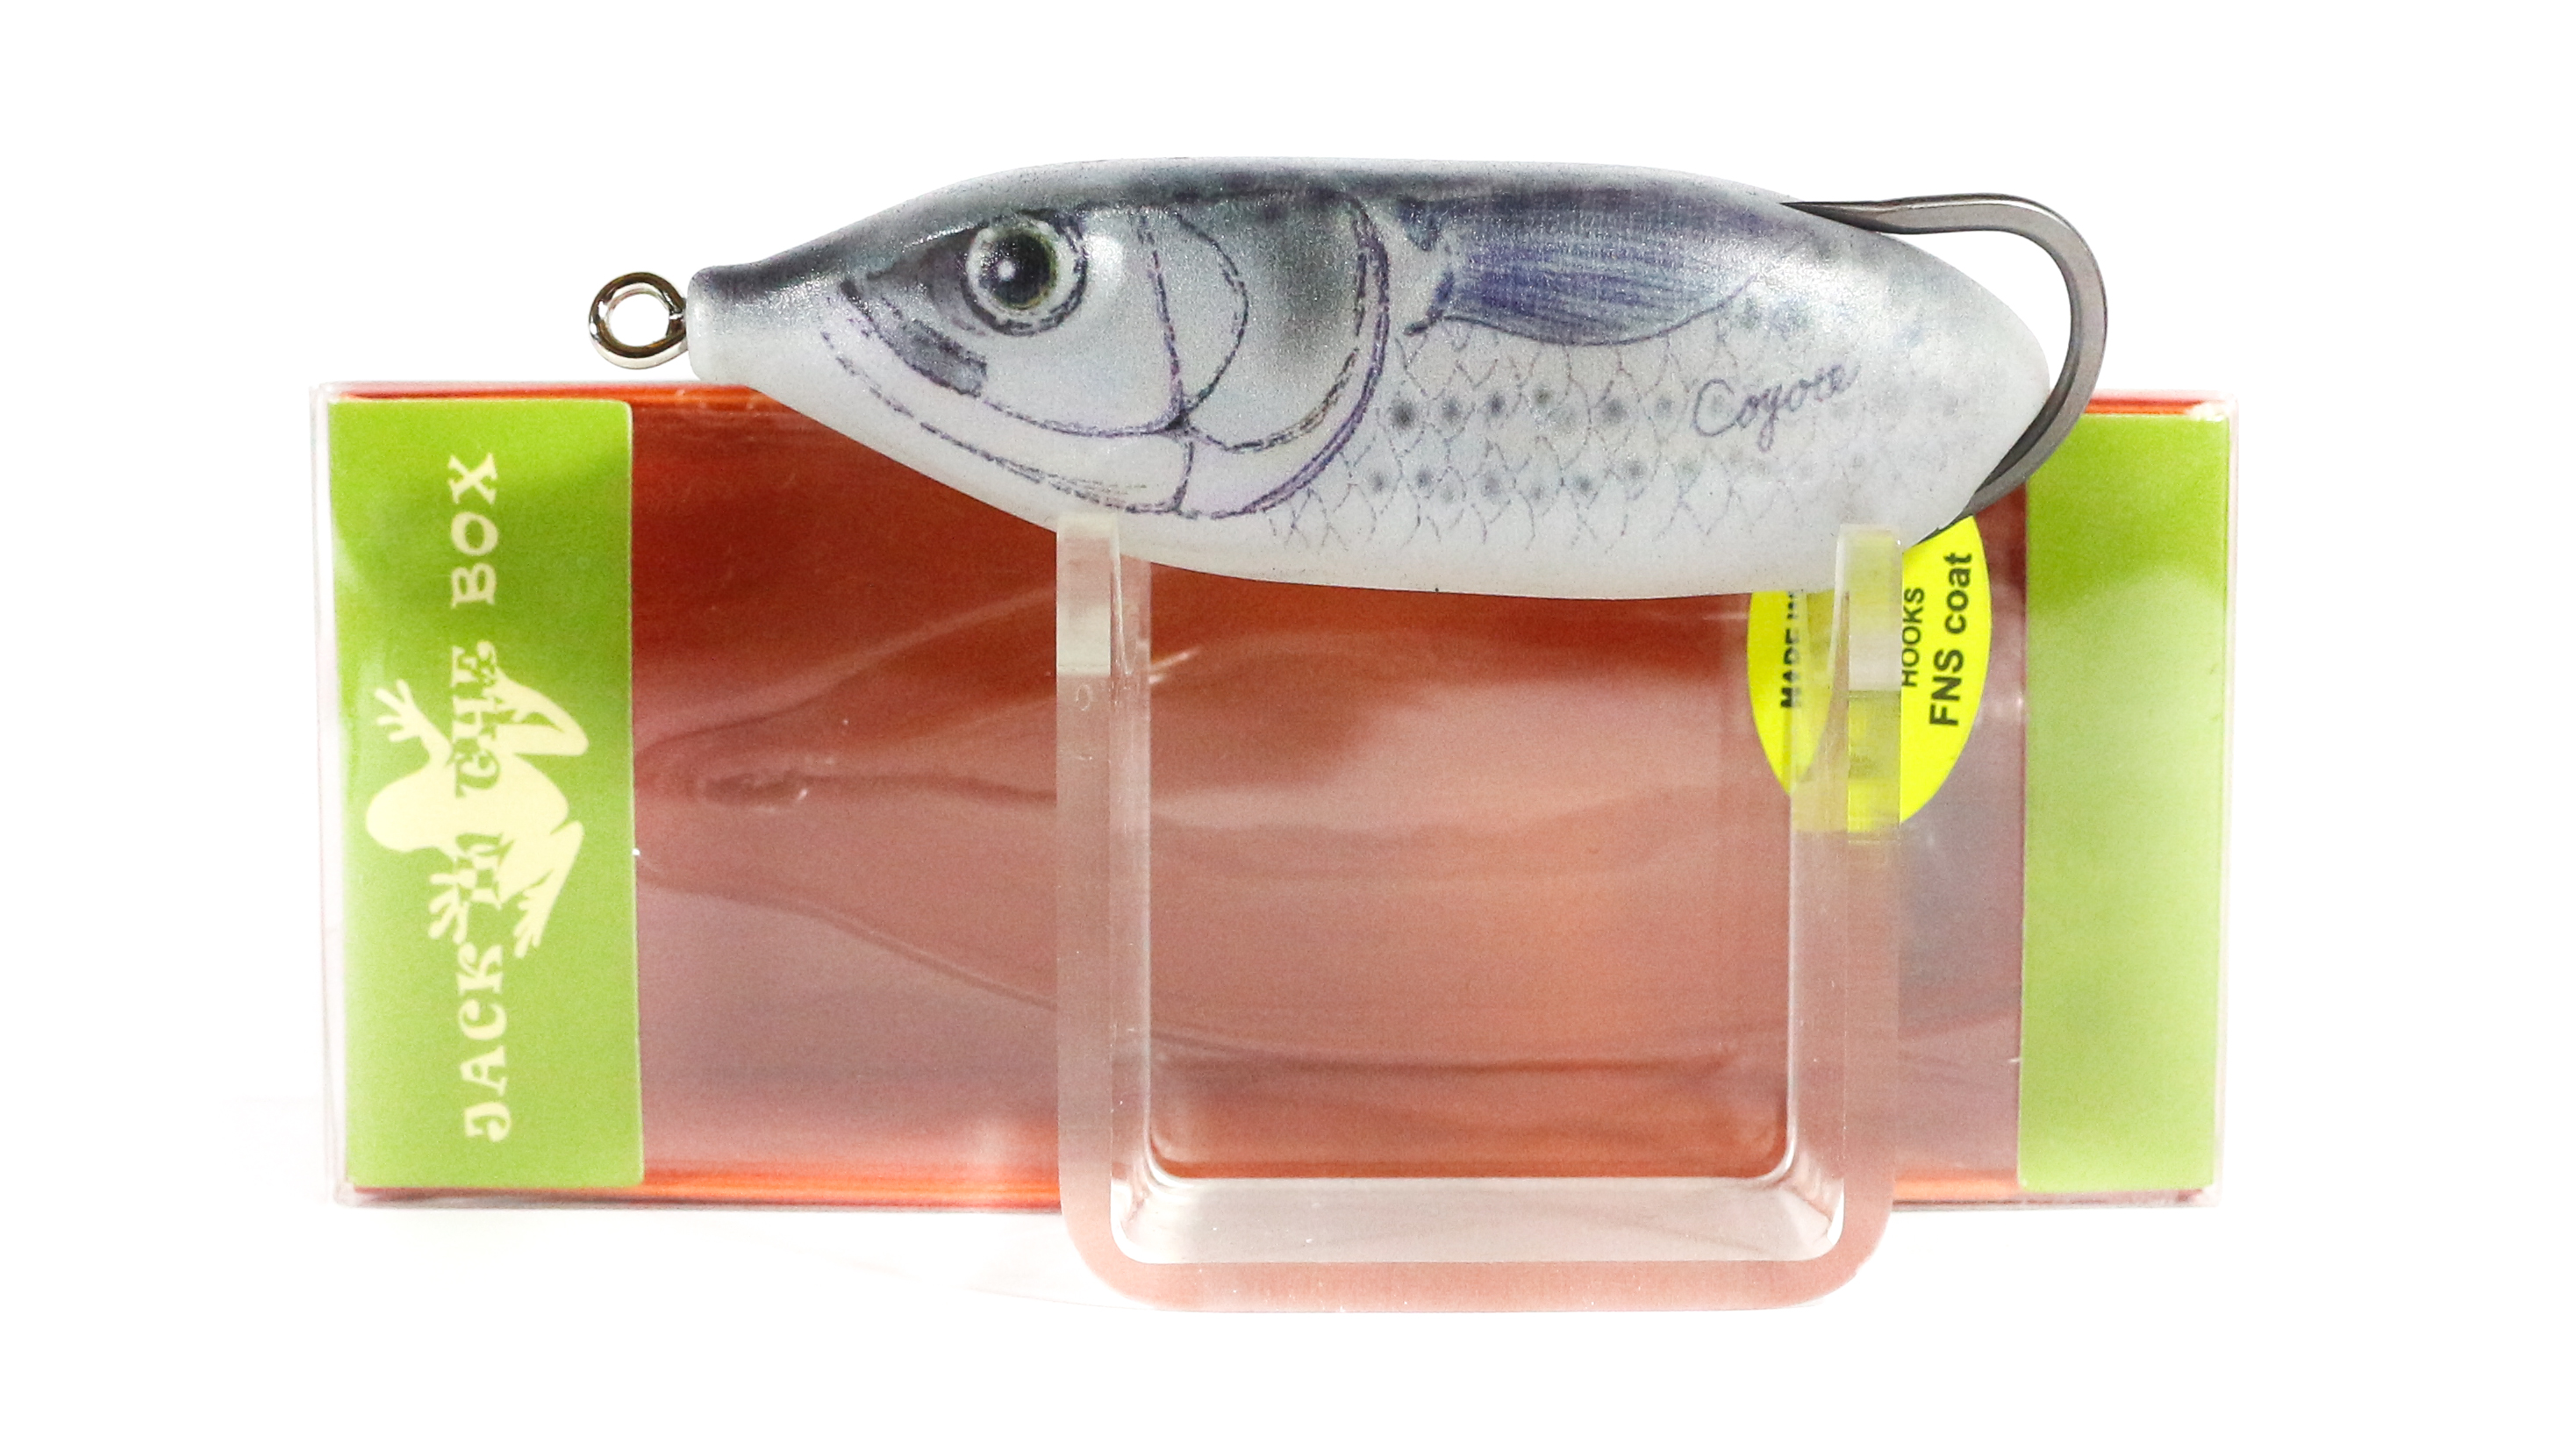 Finesse Tank Coyote Soft Plastic Floating Lure J Striper (8783)